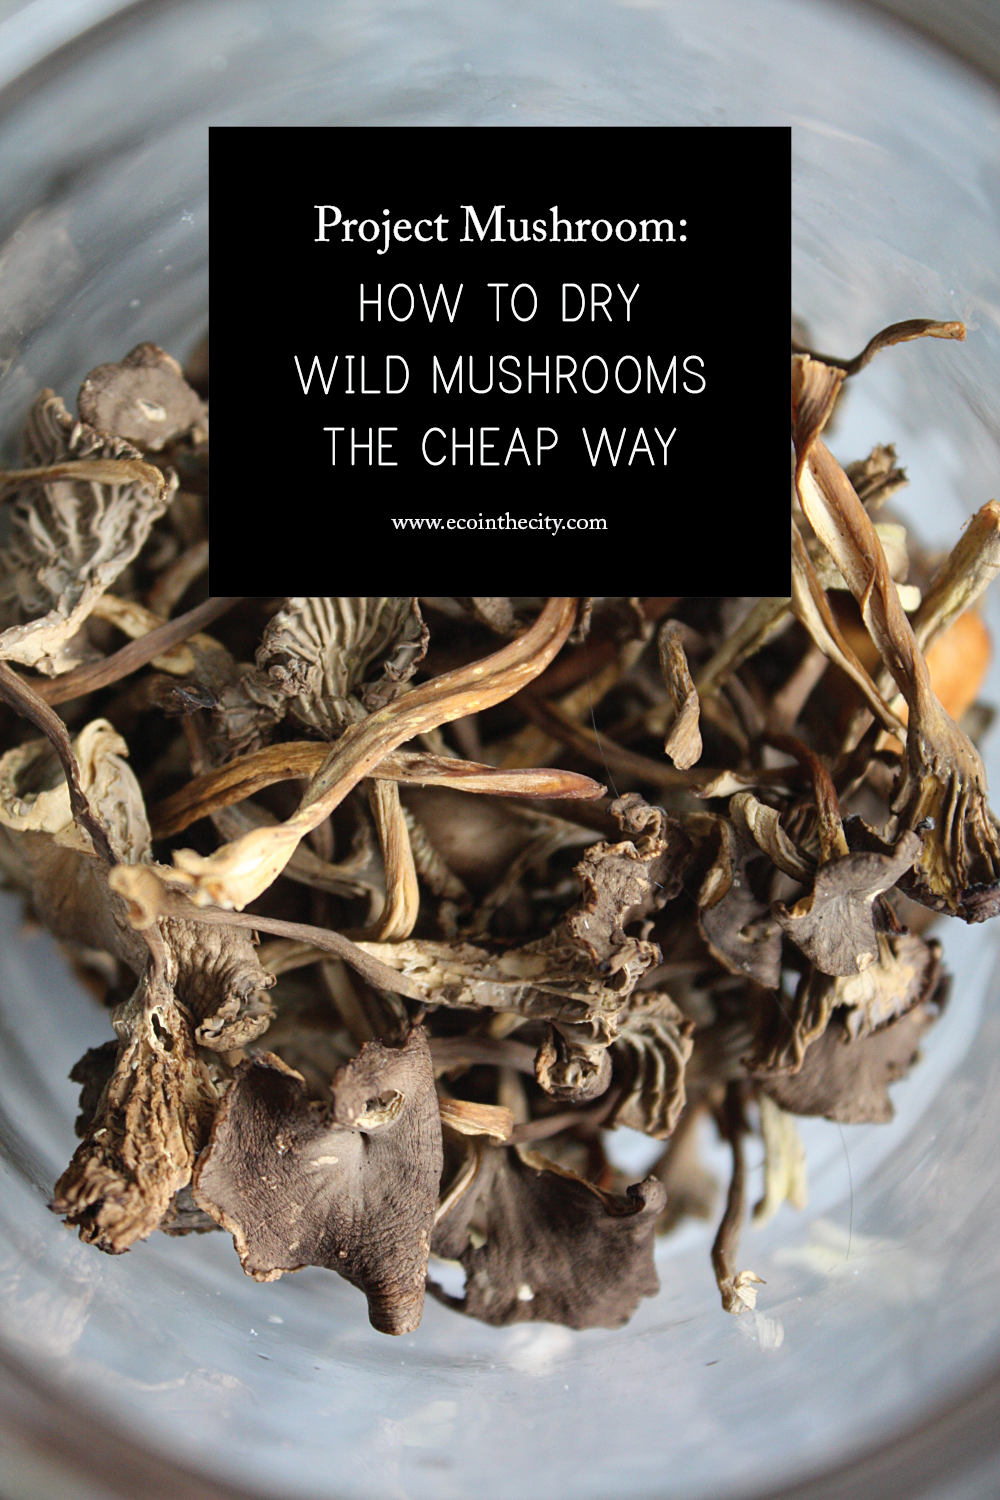 Project Mushroom: How To Dry Wild Mushrooms The Cheap Way Book Trailer: How  To Eat Fried Worms